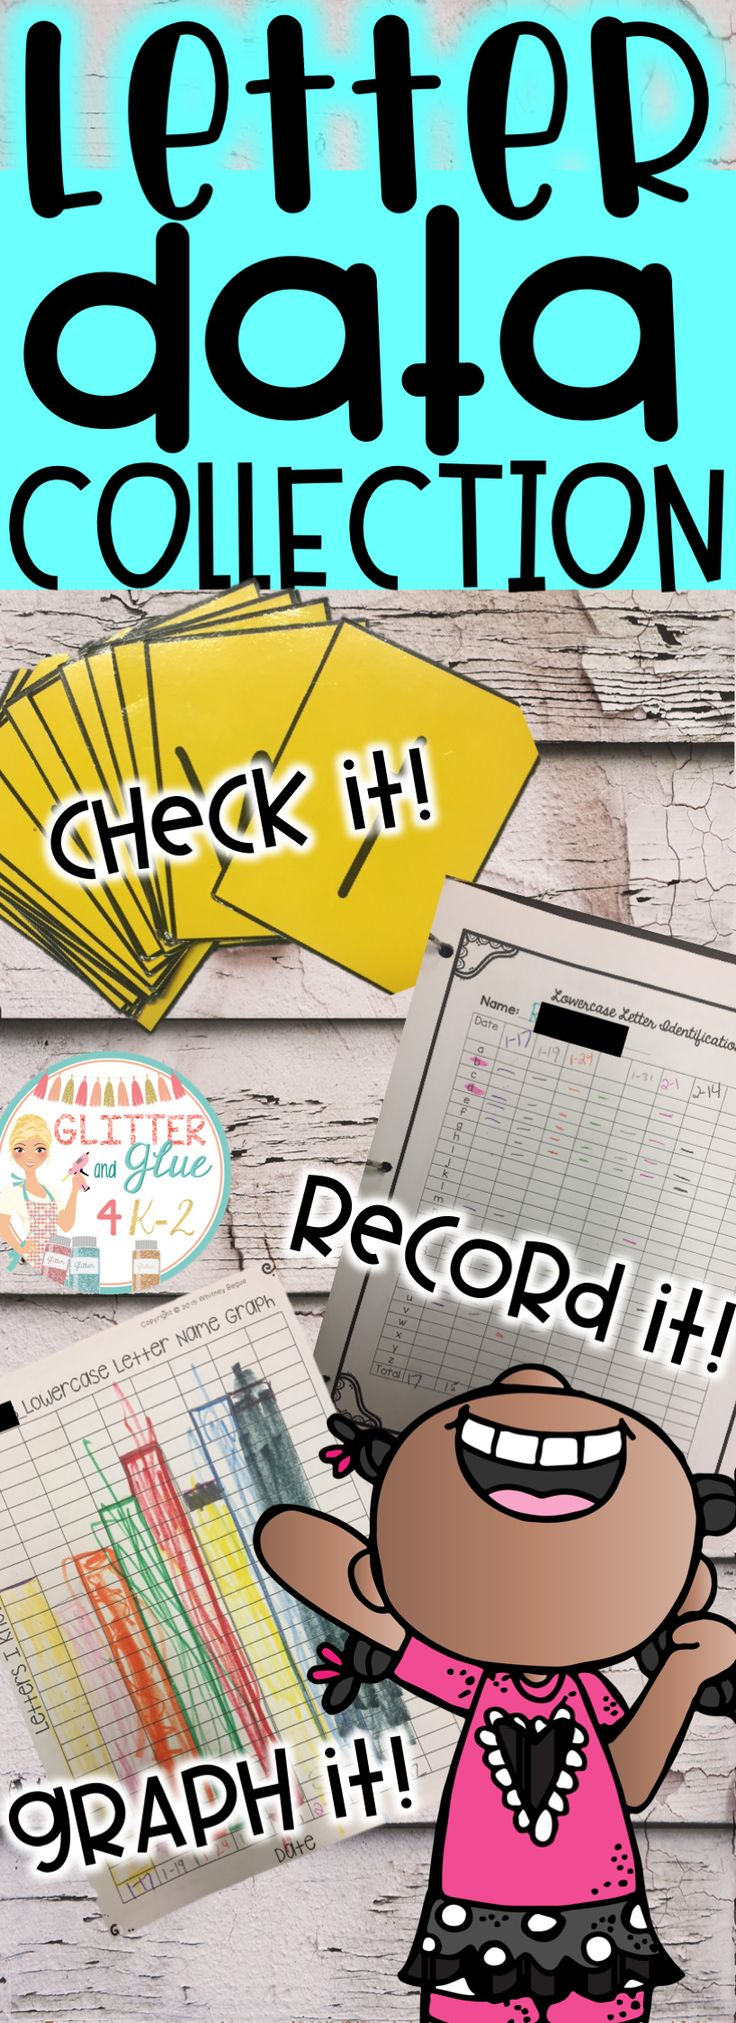 This is a great way to start collecting data on your students' letter names/ sounds! Get them motivated to learn their letters with their own graph while you keep data on their individual letters/sounds. Keywords: alphabet, data collection, letters, kindergarten, preschool, teacher resources, RTI, data graphs, flashcards